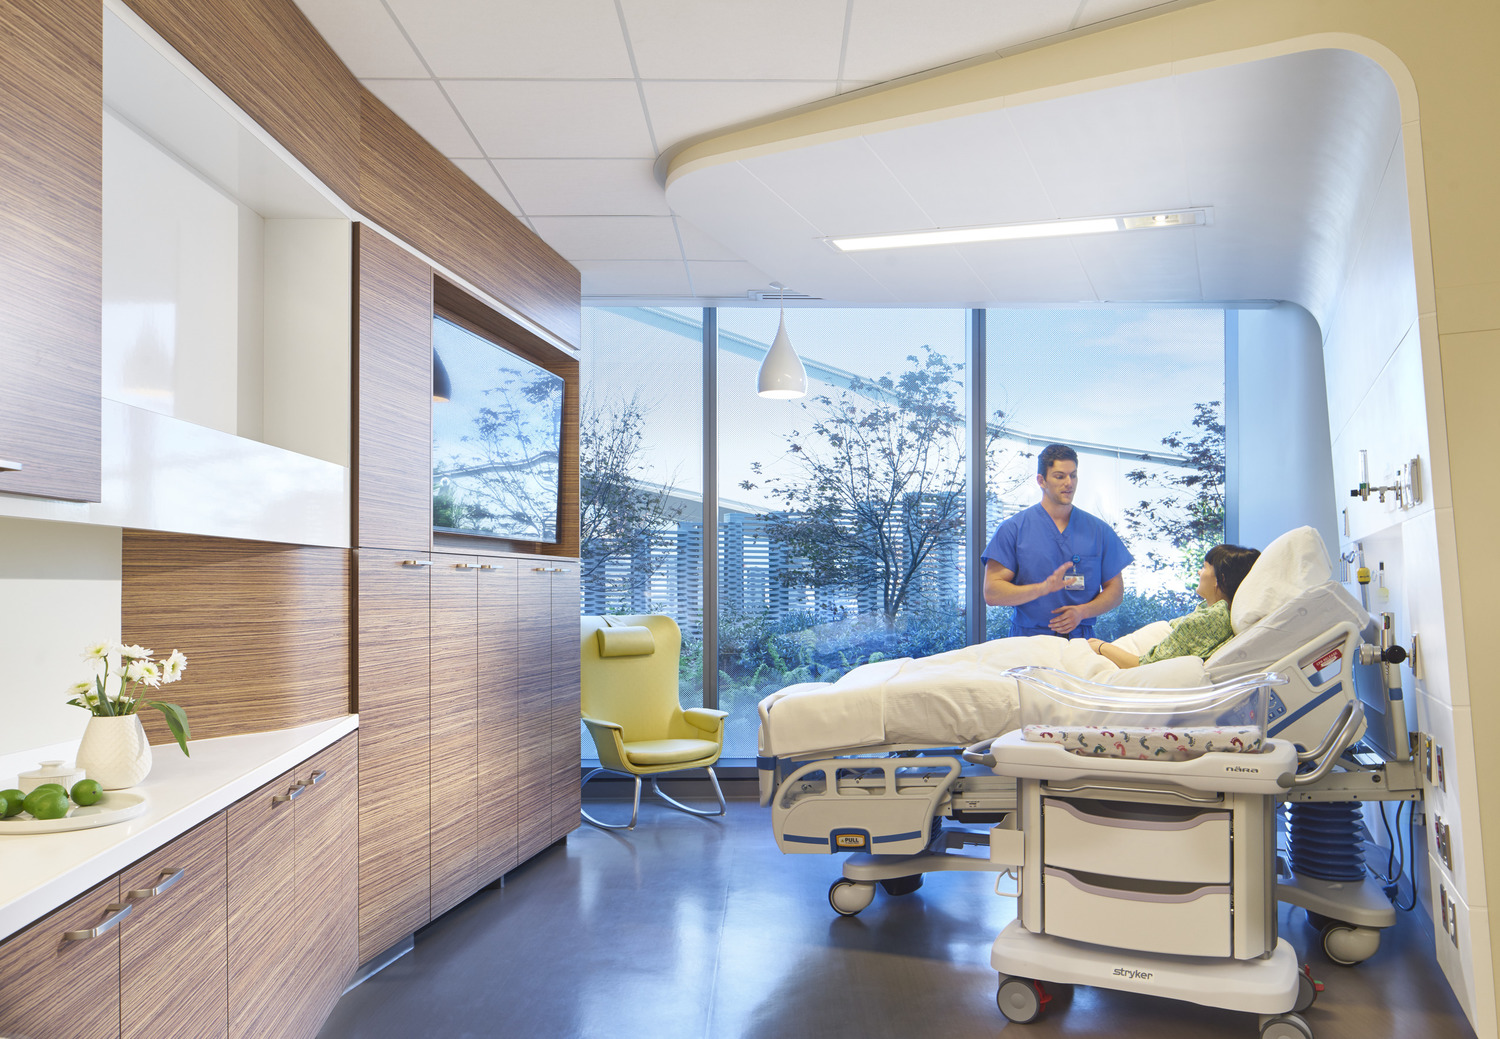 Uc San Diego Jacobs Medical Center Cannondesign